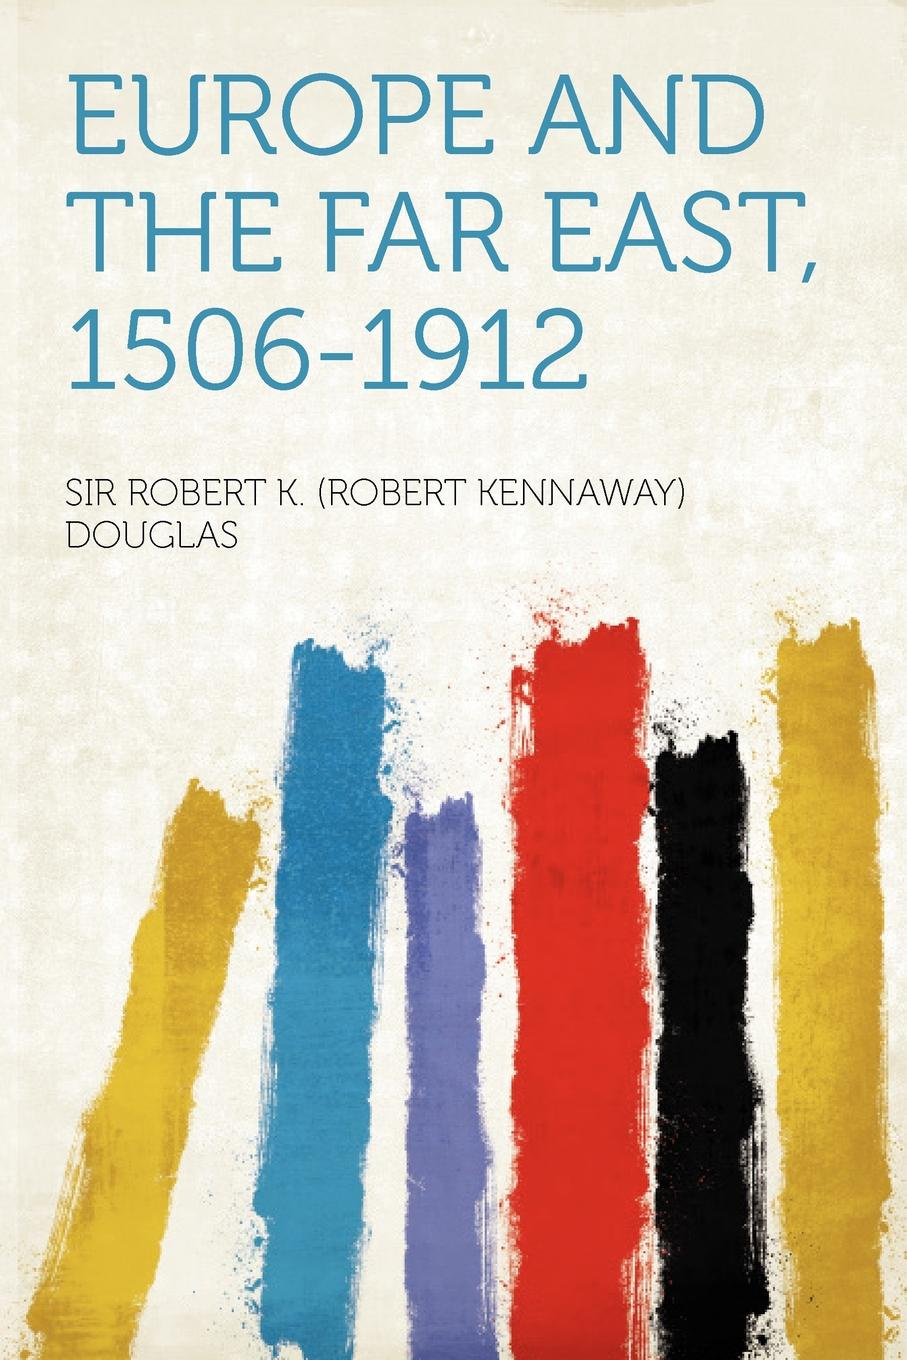 Europe and the Far East, 1506-1912.